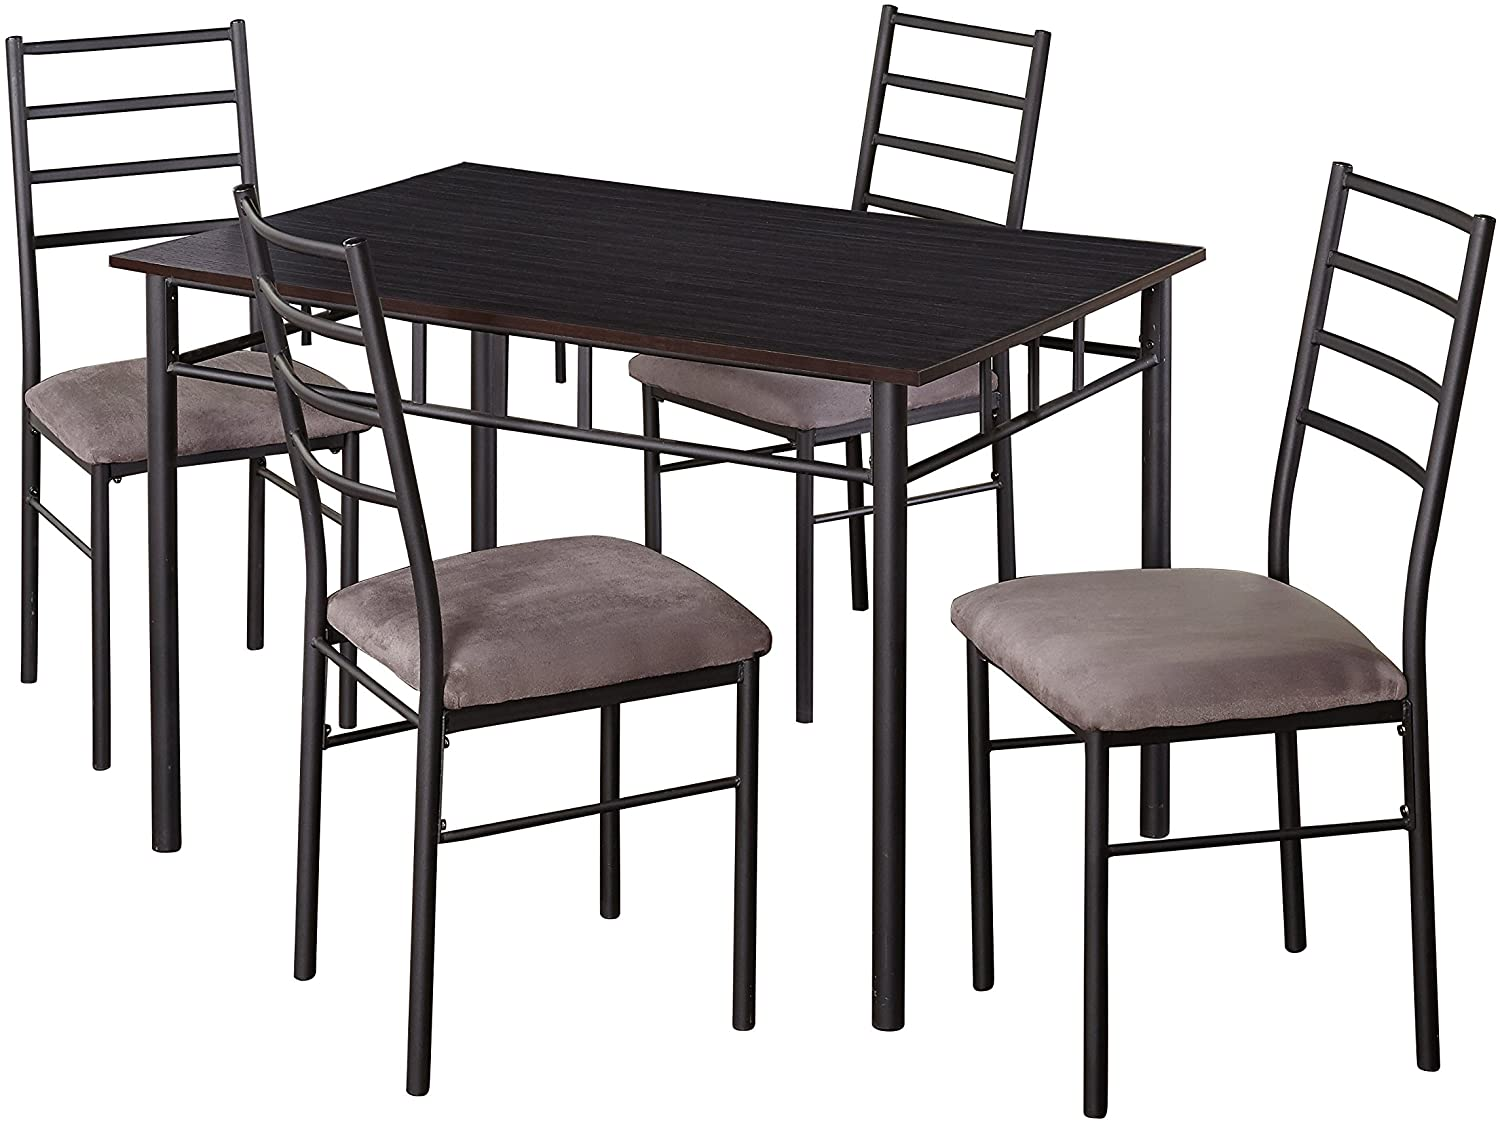 Target Marketing Systems Liv Collection Contemporary 5 Piece Metal Dining Room Table and Chairs Set with 1 Table and 4 Chairs, Black